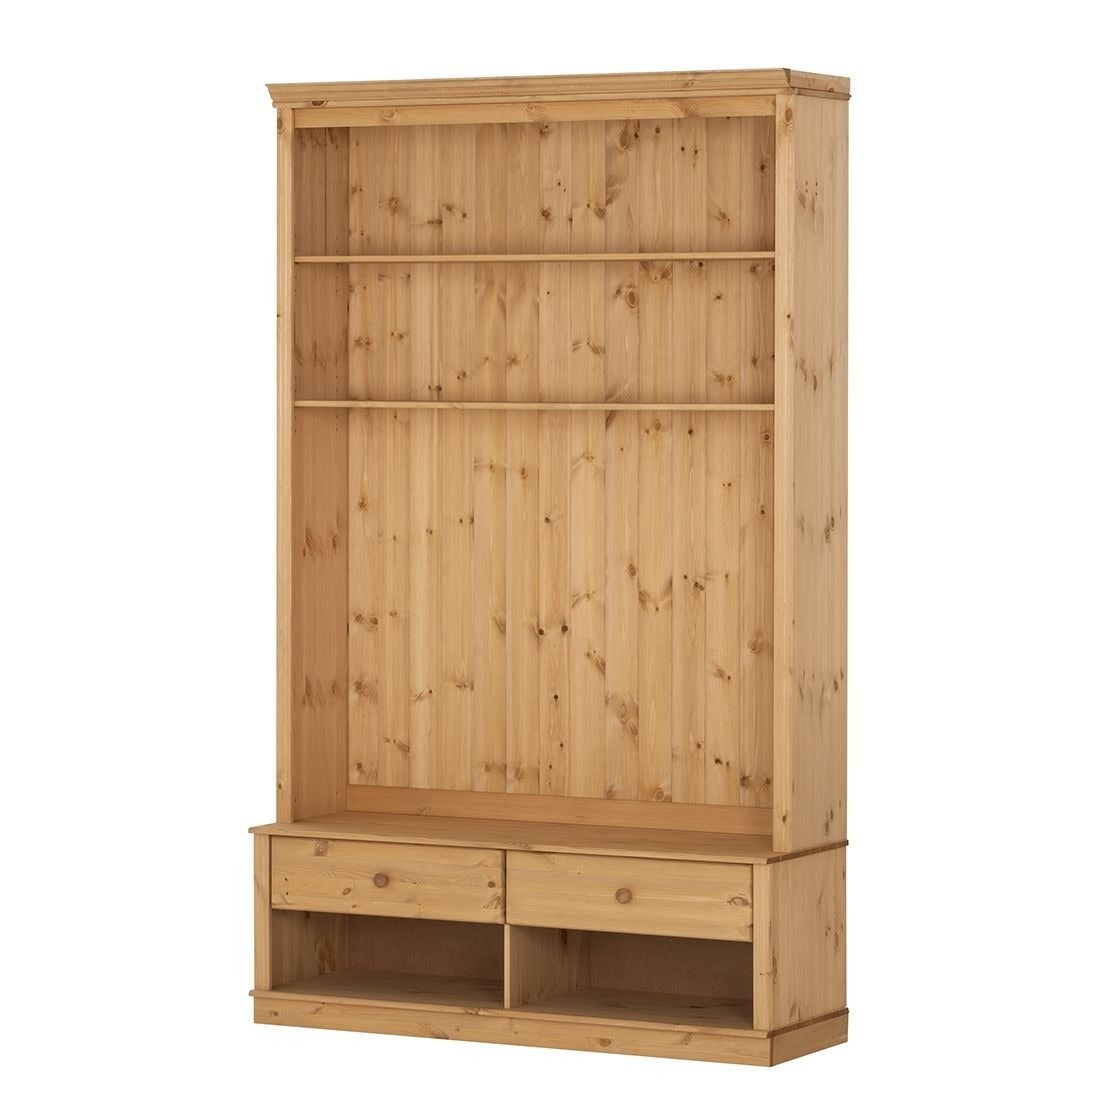 Buy Closed Back Wall Hutches Bookshelves Bookcases Online